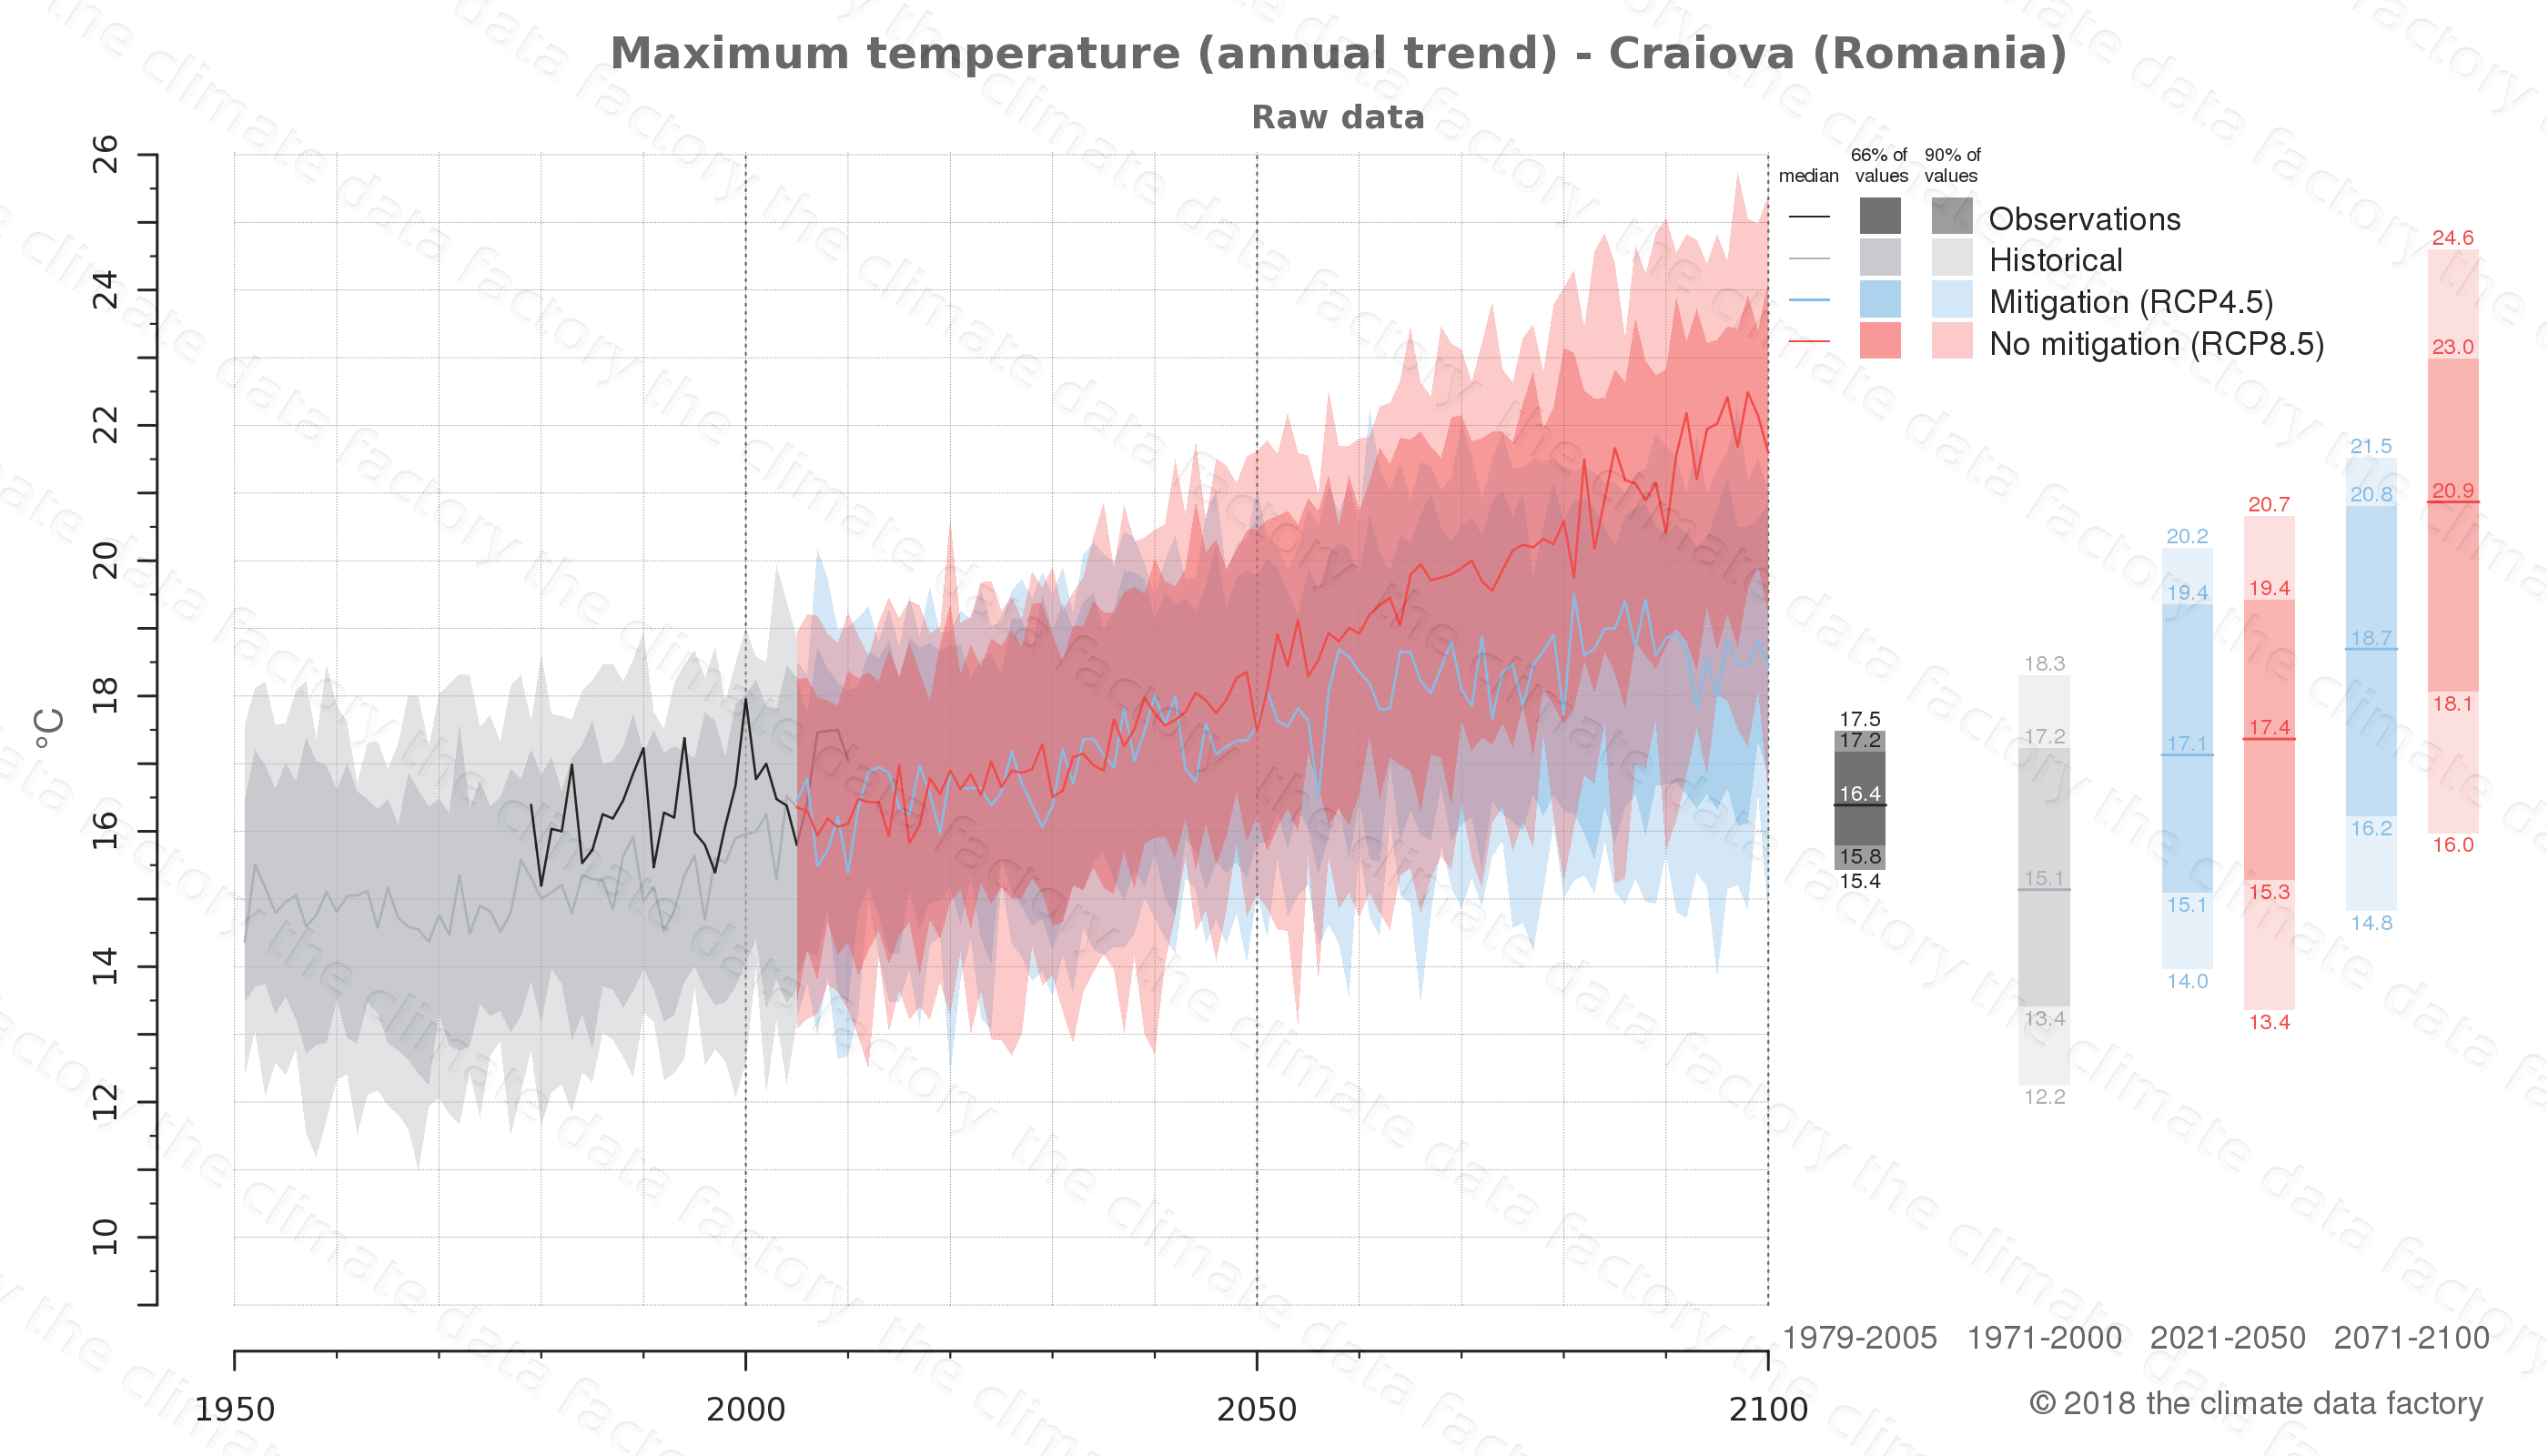 climate change data policy adaptation climate graph city data maximum-temperature craiova romania